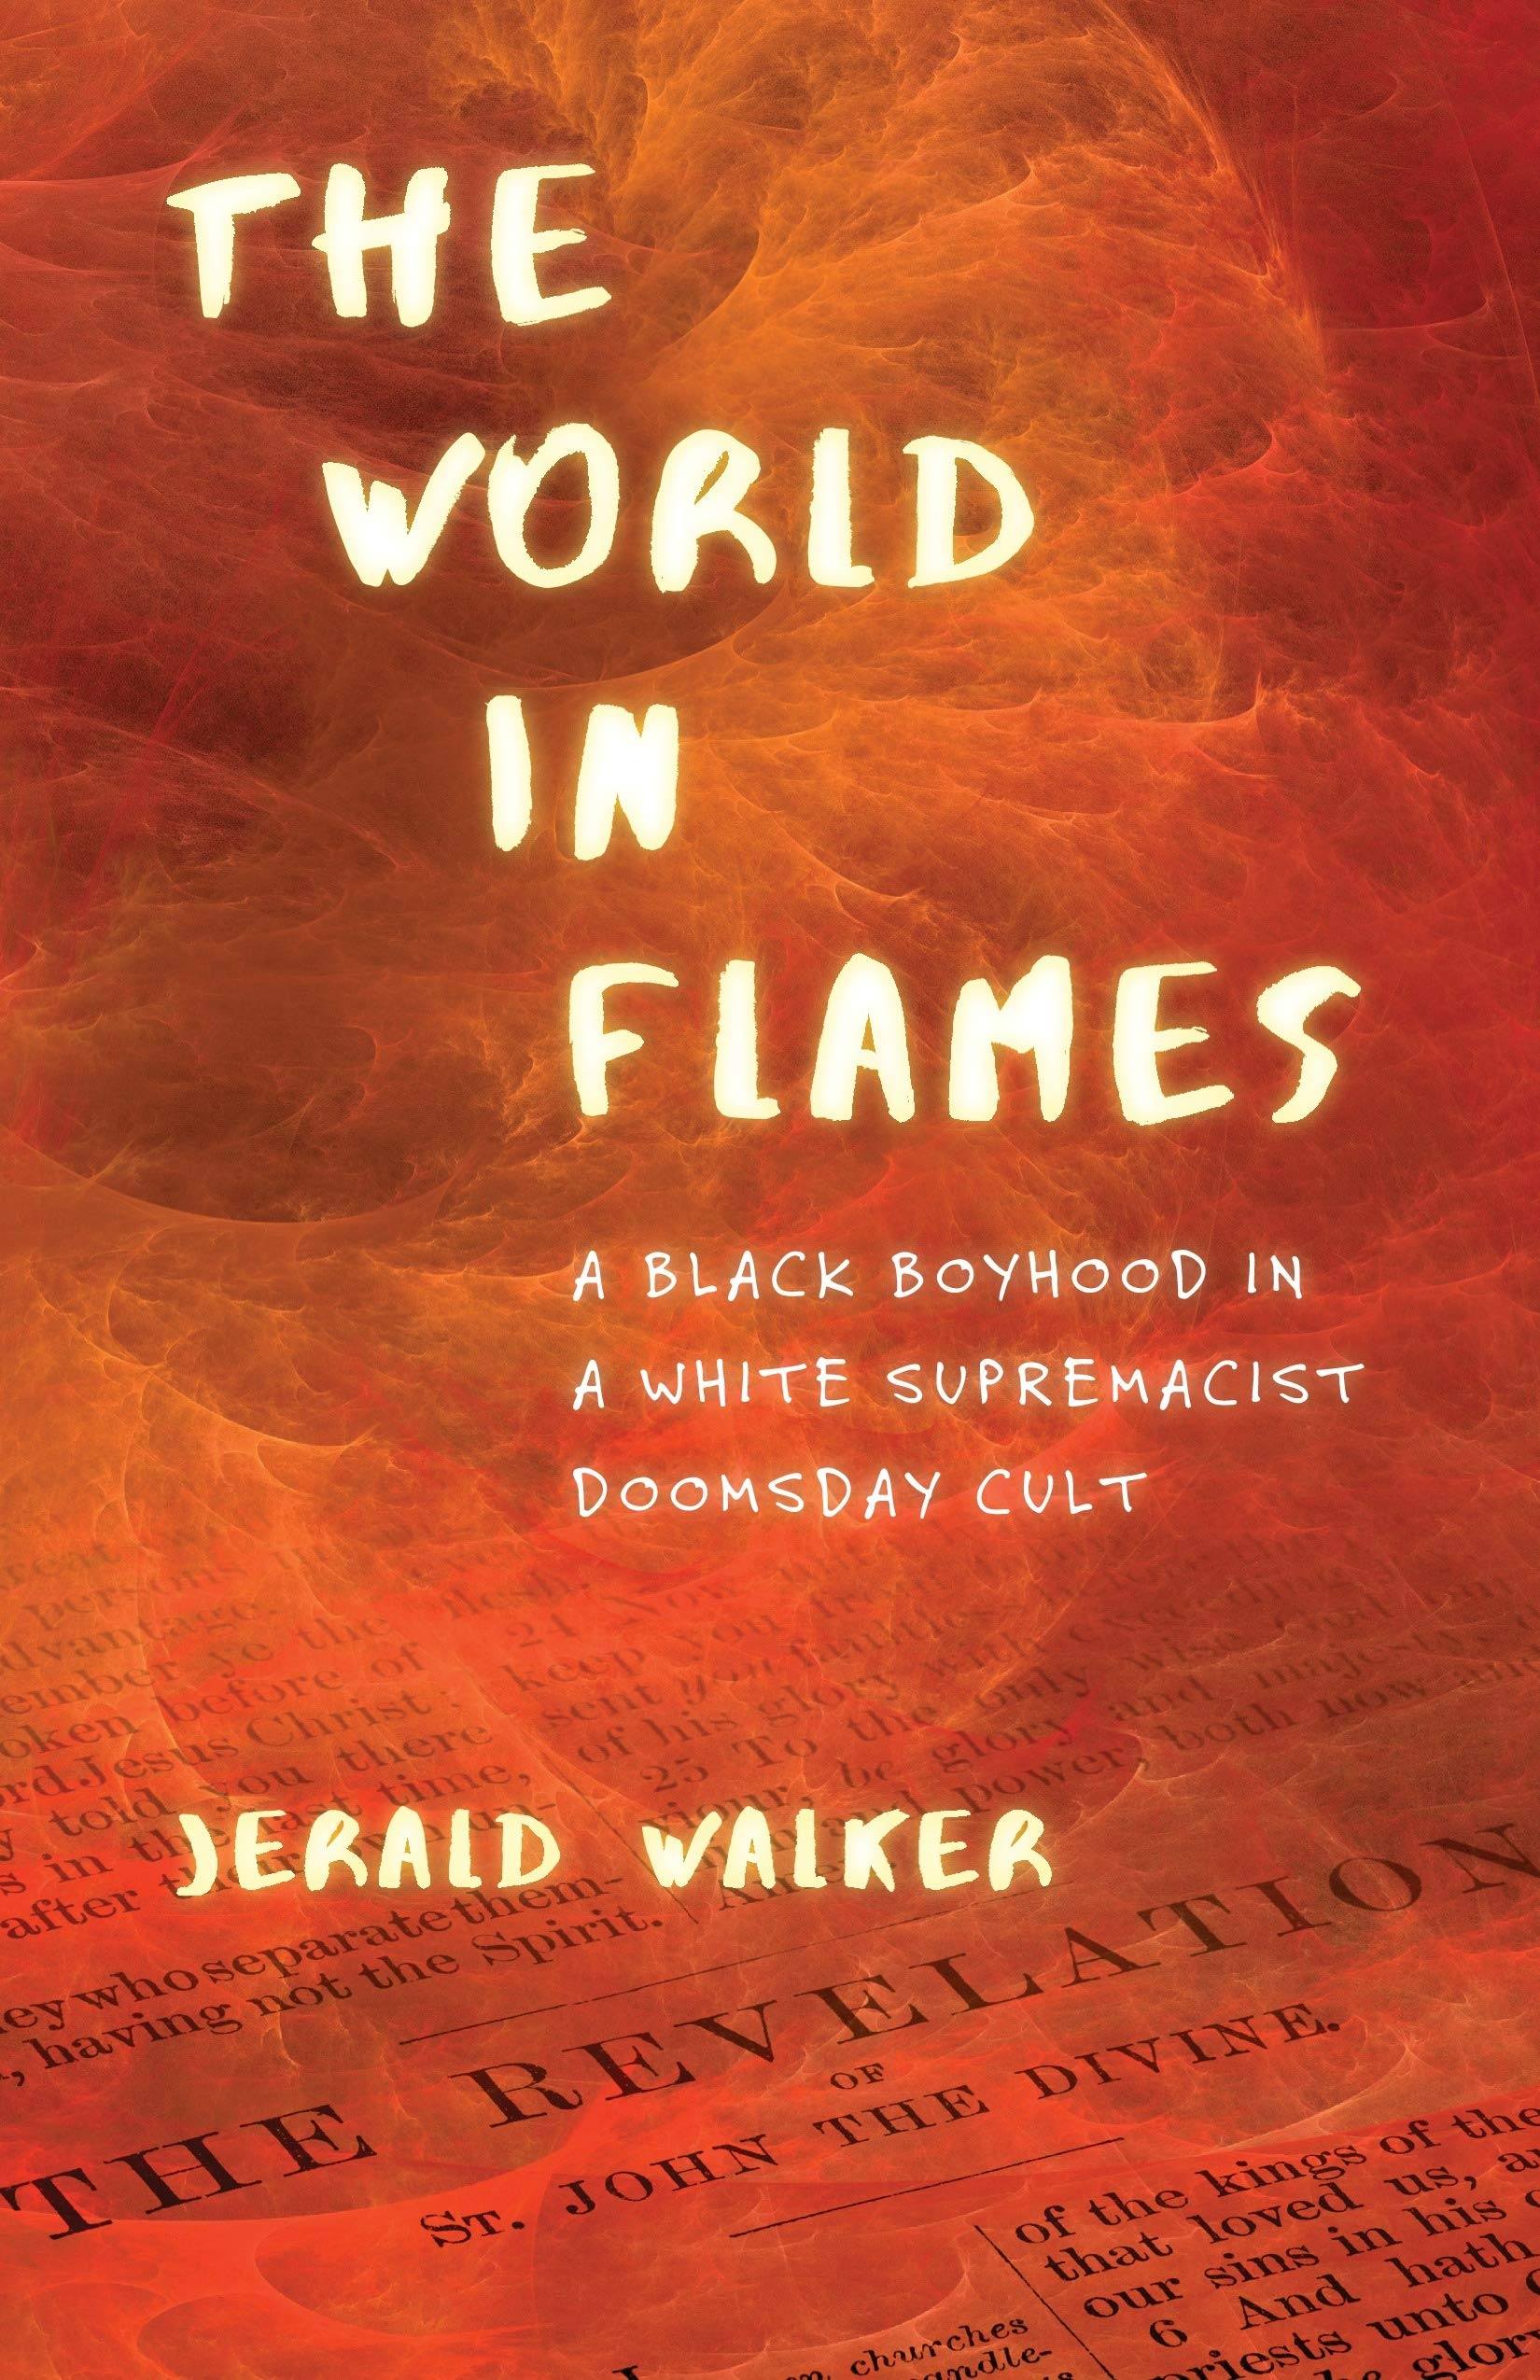 Amazon.com: The World in Flames: A Black Boyhood in a White Supremacist  Doomsday Cult (9780807027509): Jerald Walker: Books